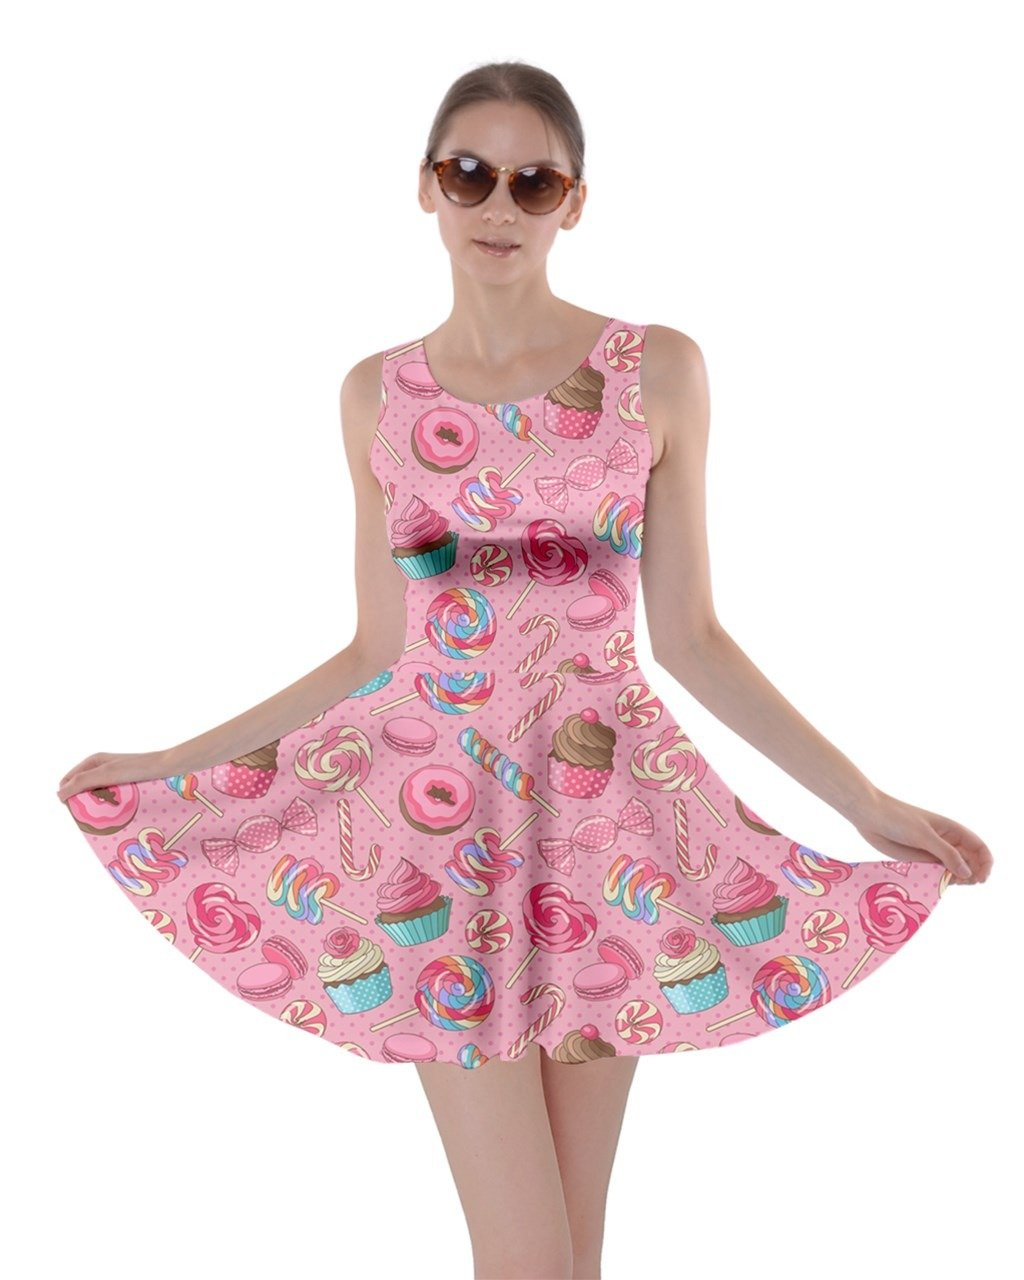 CowCow Womens Pink2 Yummy Colorful Sweet Lollipop Candy Macaroon Cupcake Donut Skater Dress, Pink2 - M by CowCow